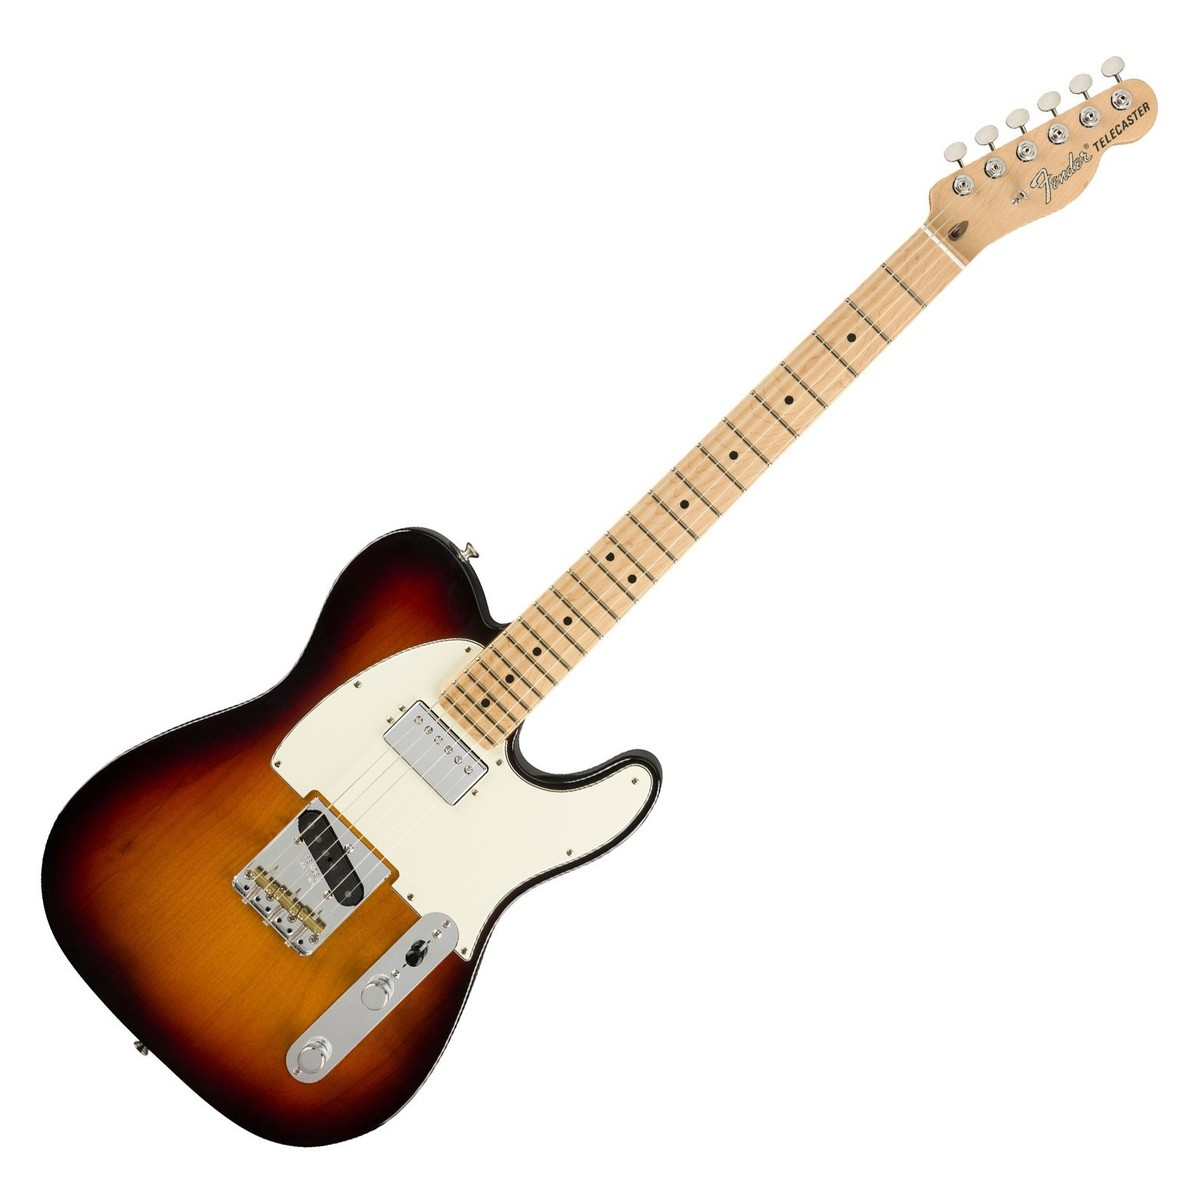 fender american performer telecaster hs mn 3 color sunburst at gear4music. Black Bedroom Furniture Sets. Home Design Ideas